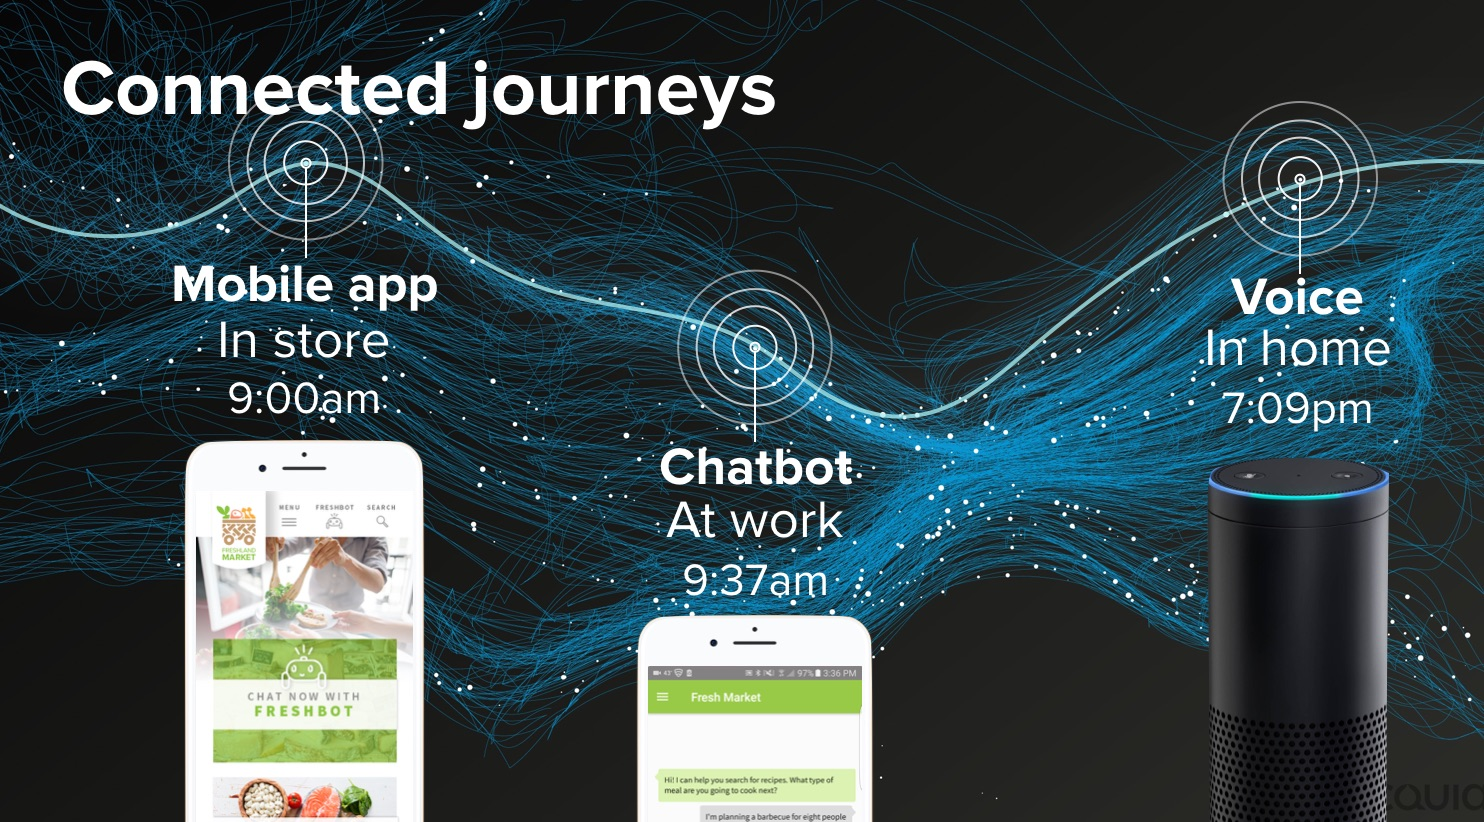 A continuous journey across multiple digital touch points and devices